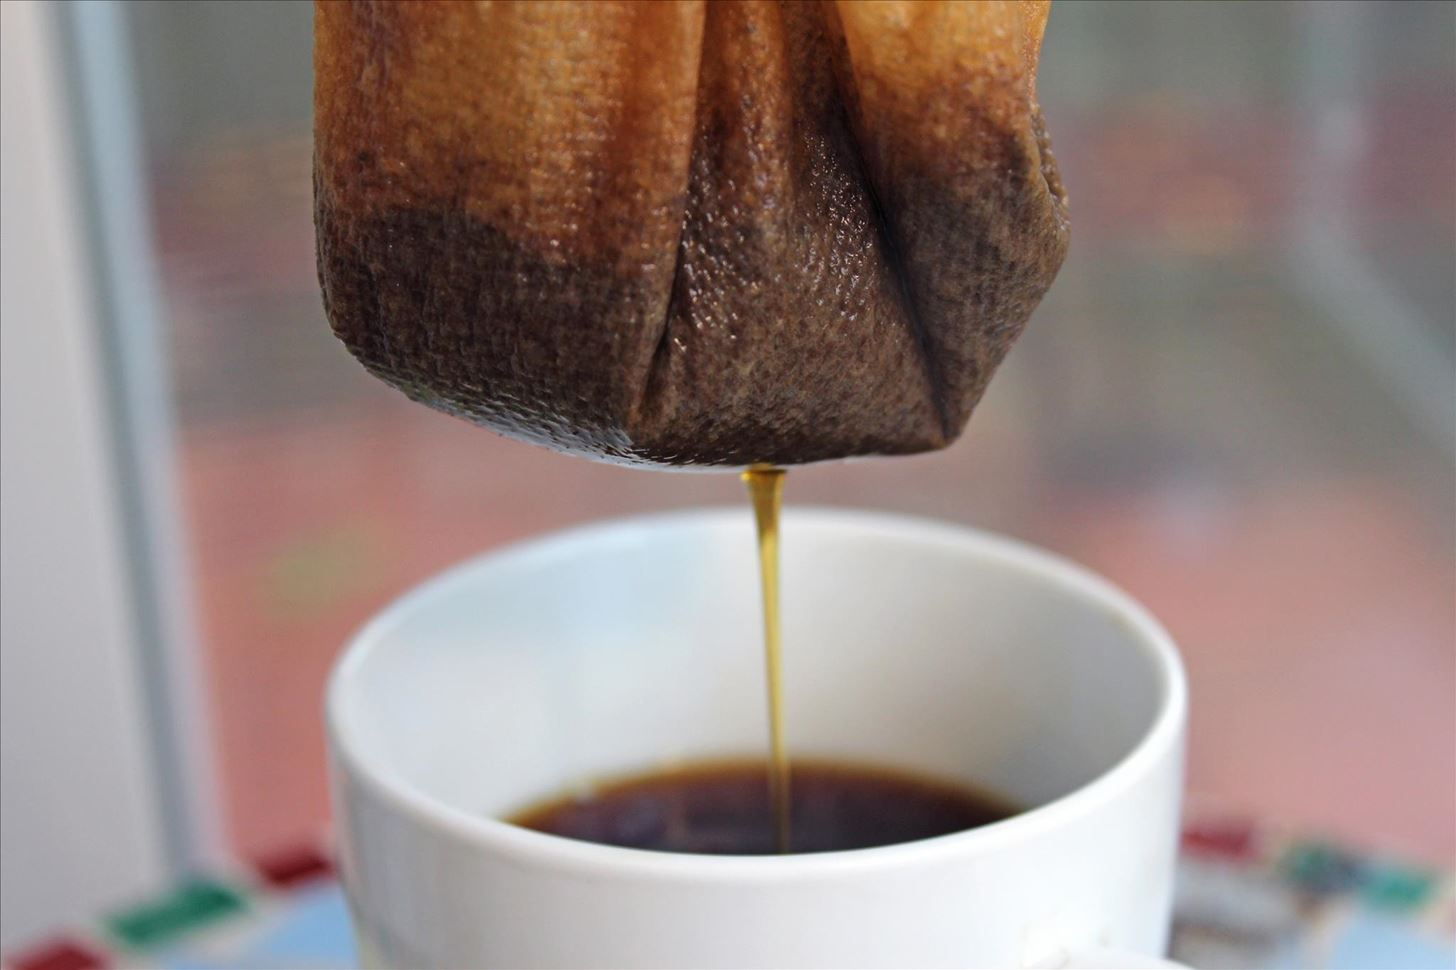 How to Make a Freakin' Great Cup of Joe Without Any Coffee Swag